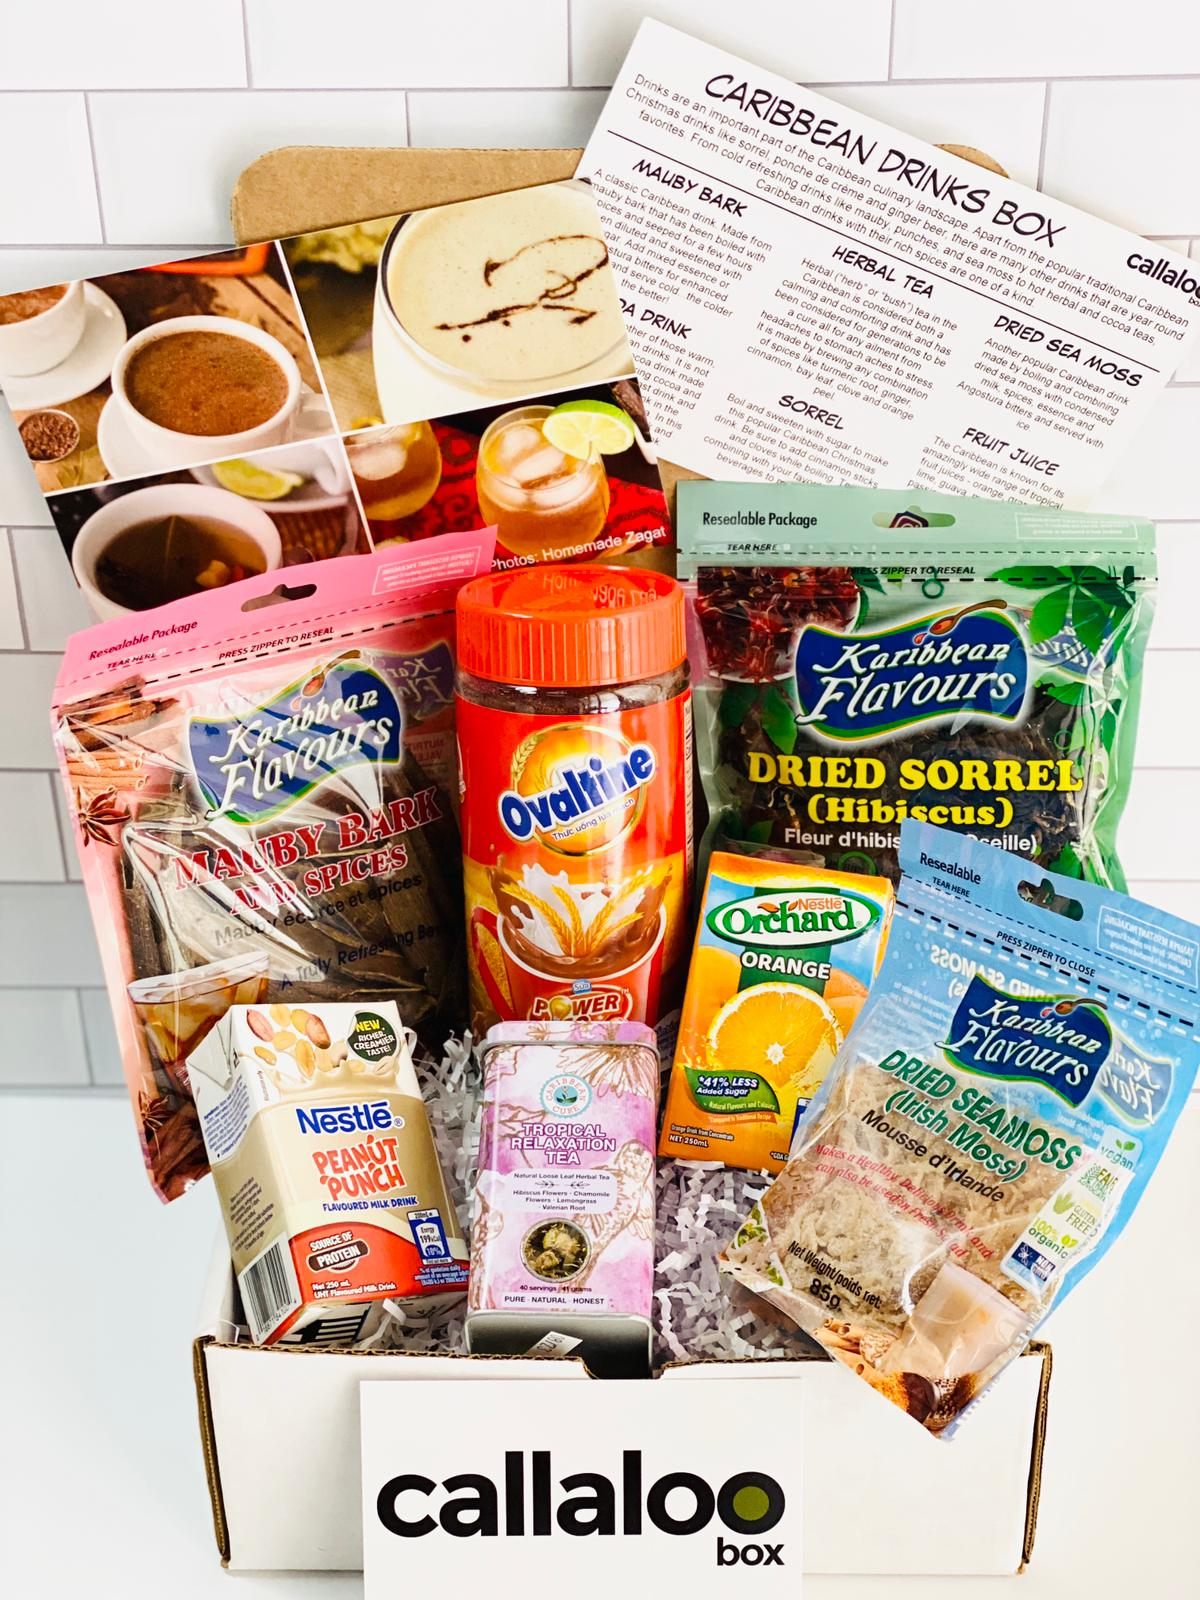 September 2020 - The Caribbean Drinks Box